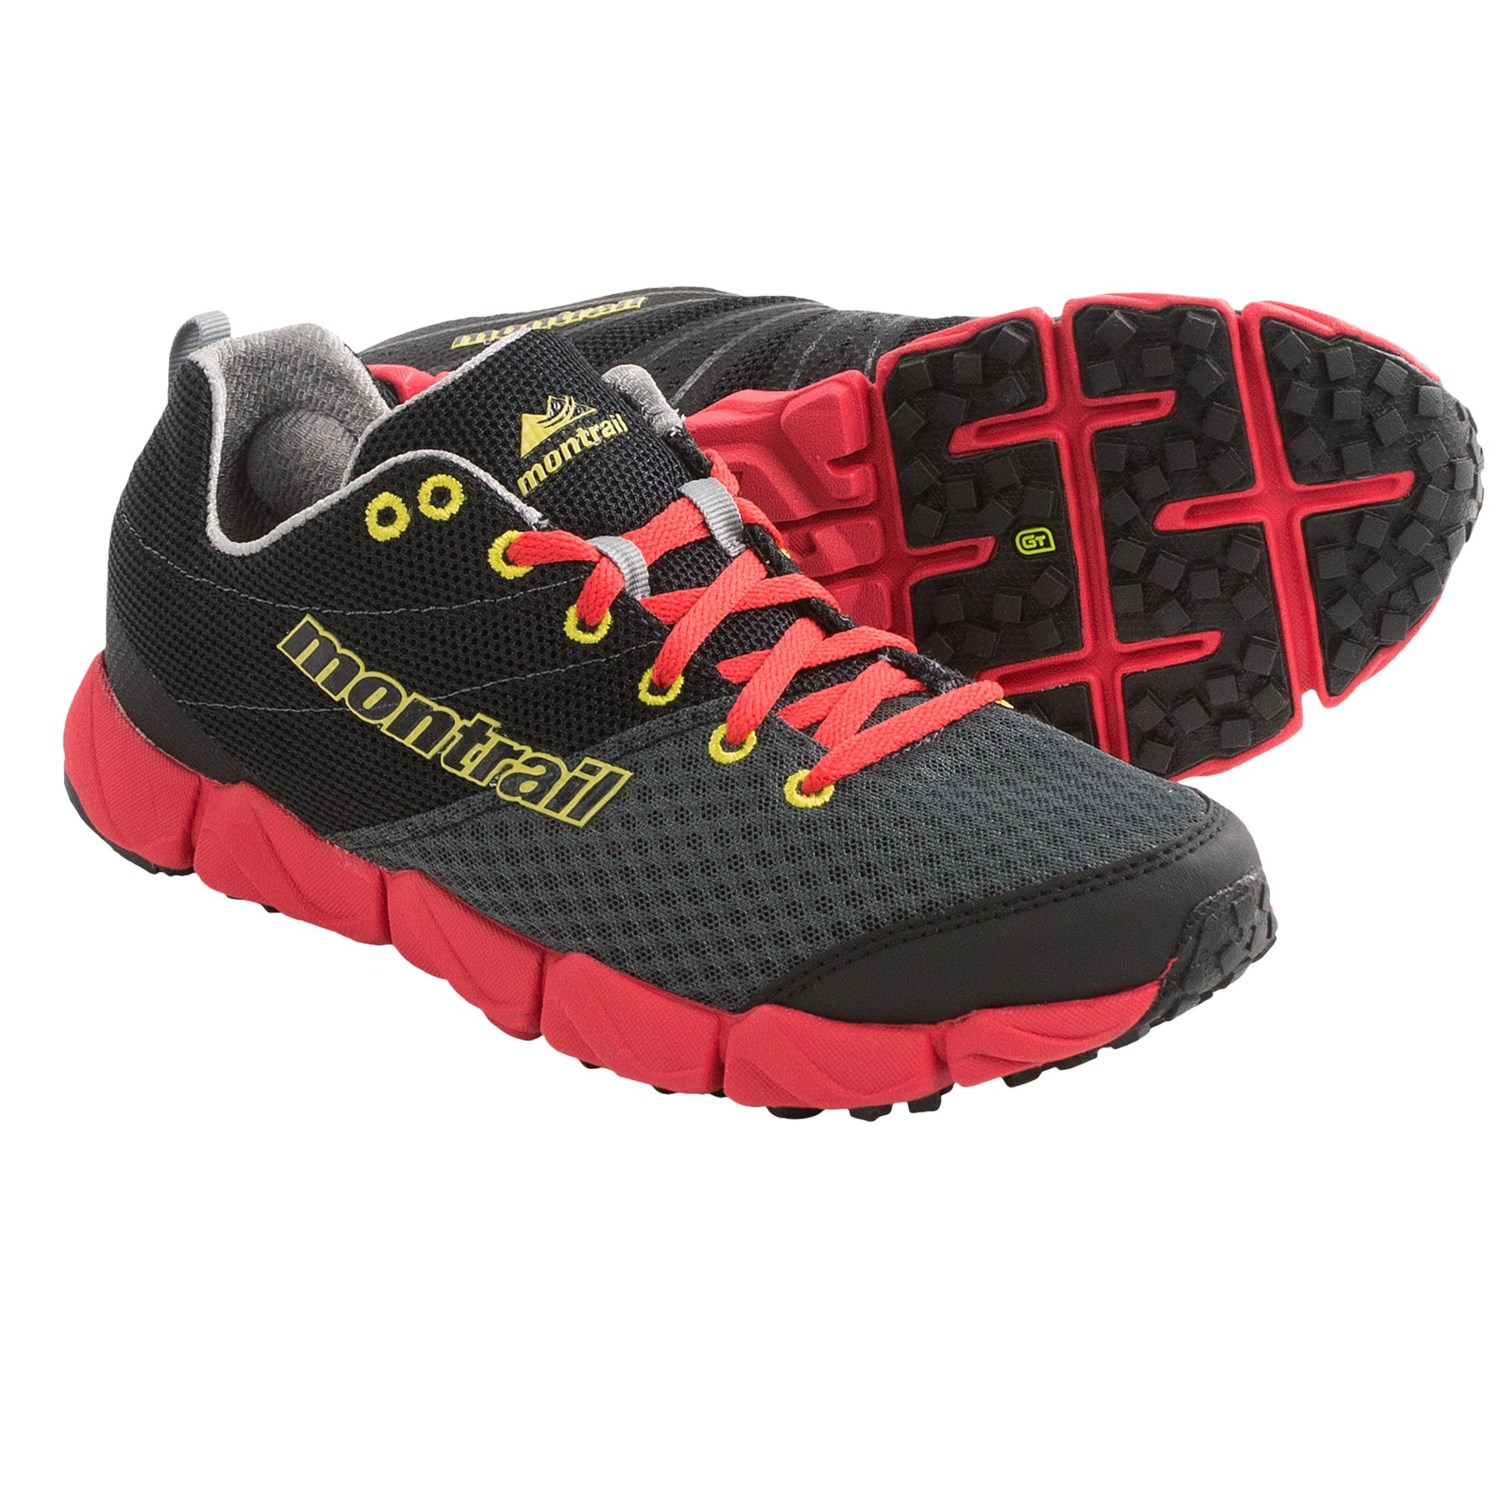 Montrail Fluid Flex Trail Shoes Women S Review